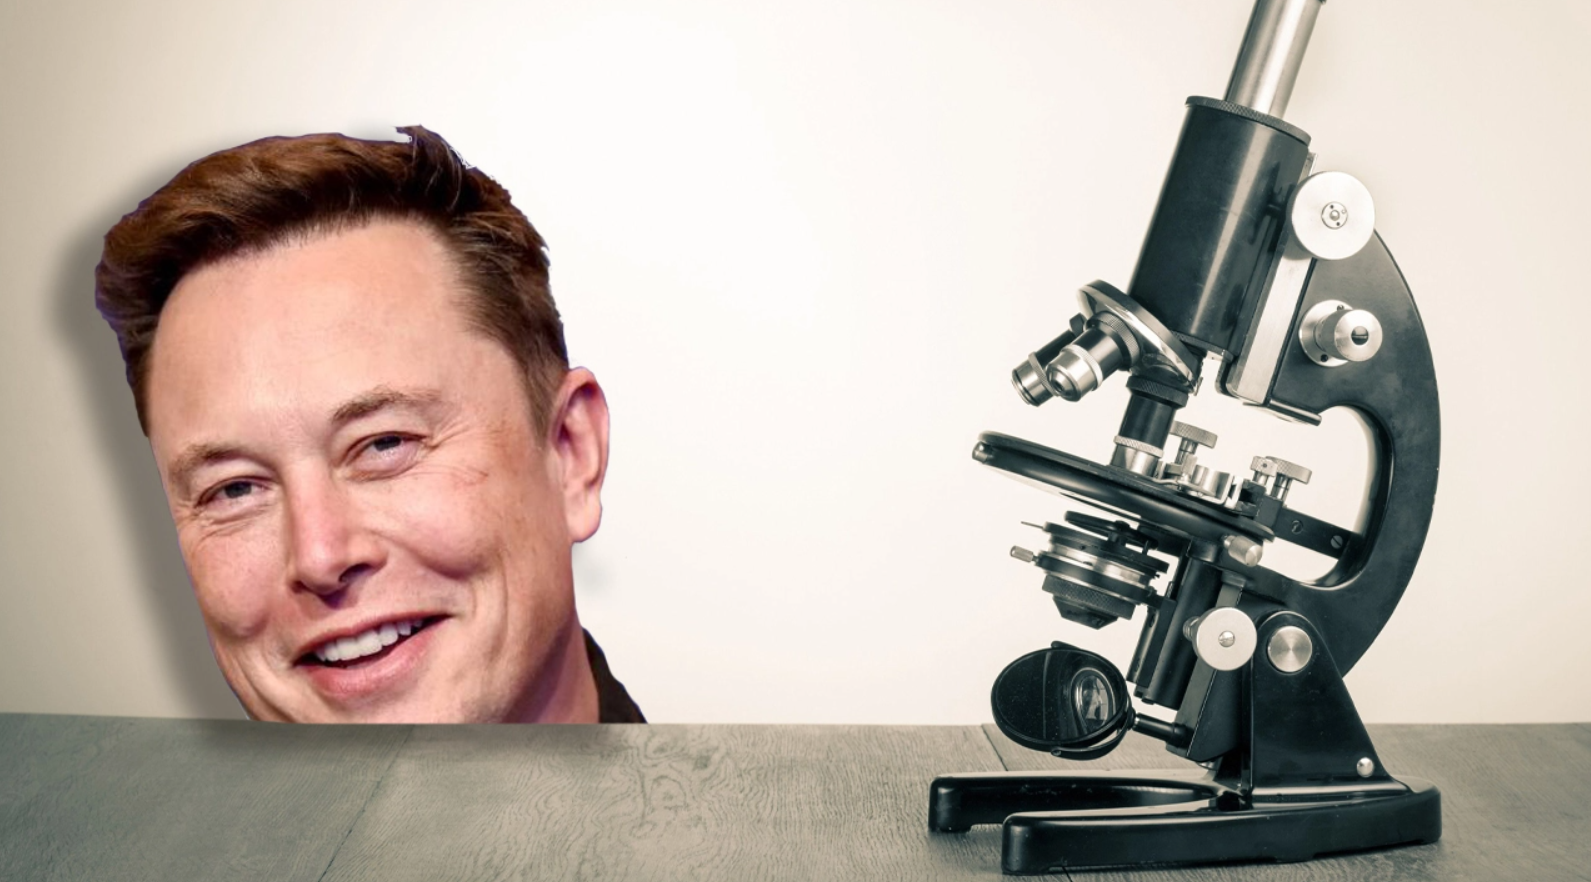 Elon Musk's '50% Clean Energy' Bitcoin Mining Goal Will Be Complicated To Verify